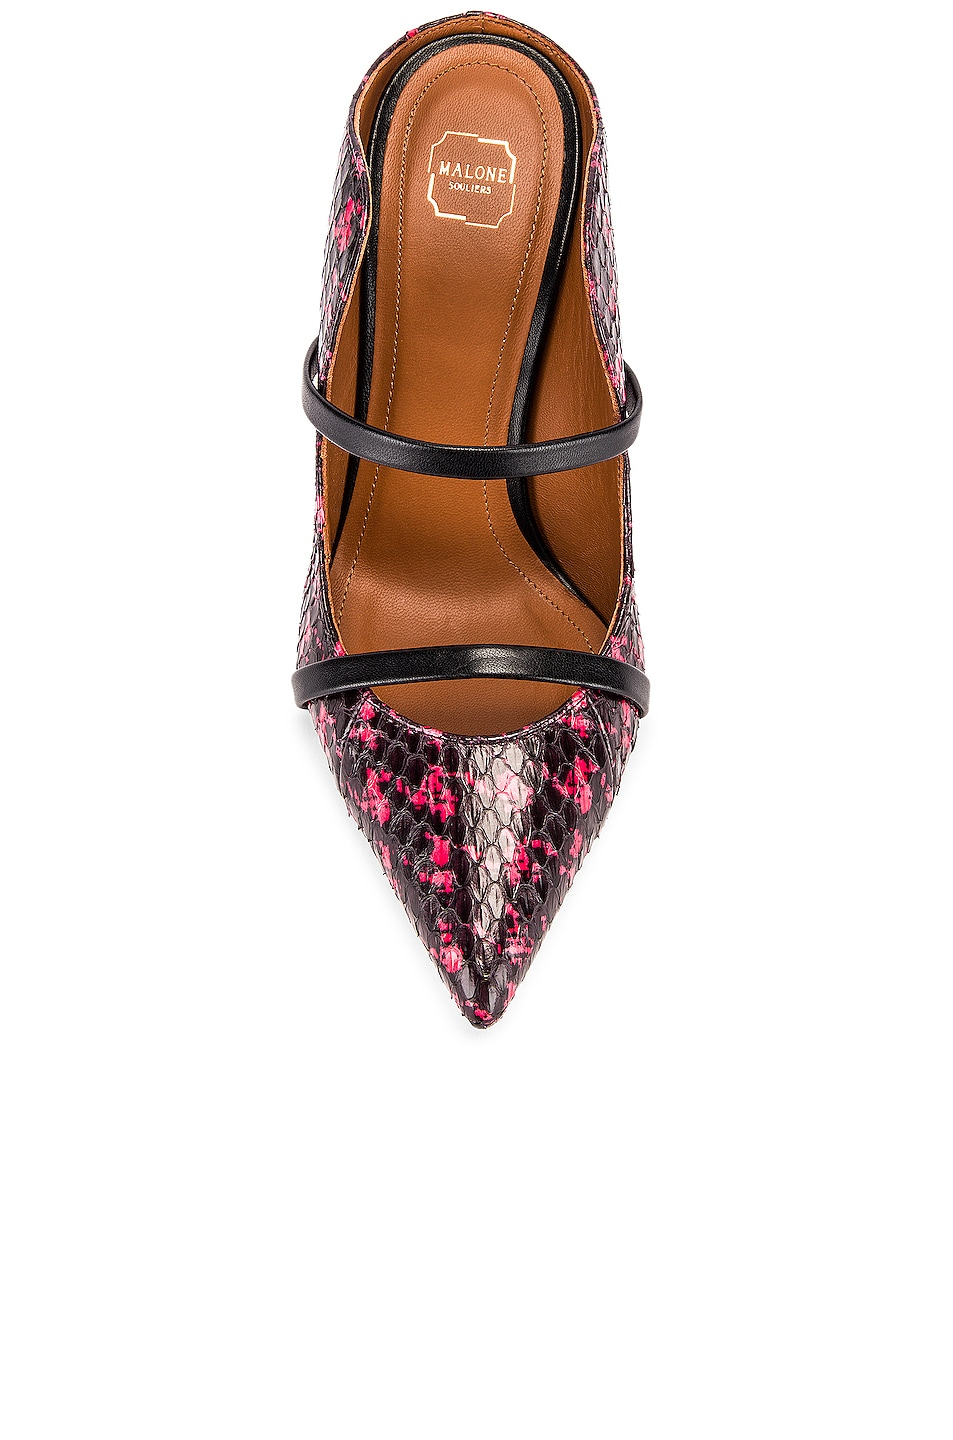 Image 4 of Malone Souliers Maureen MS 85 Pump in Red & Black